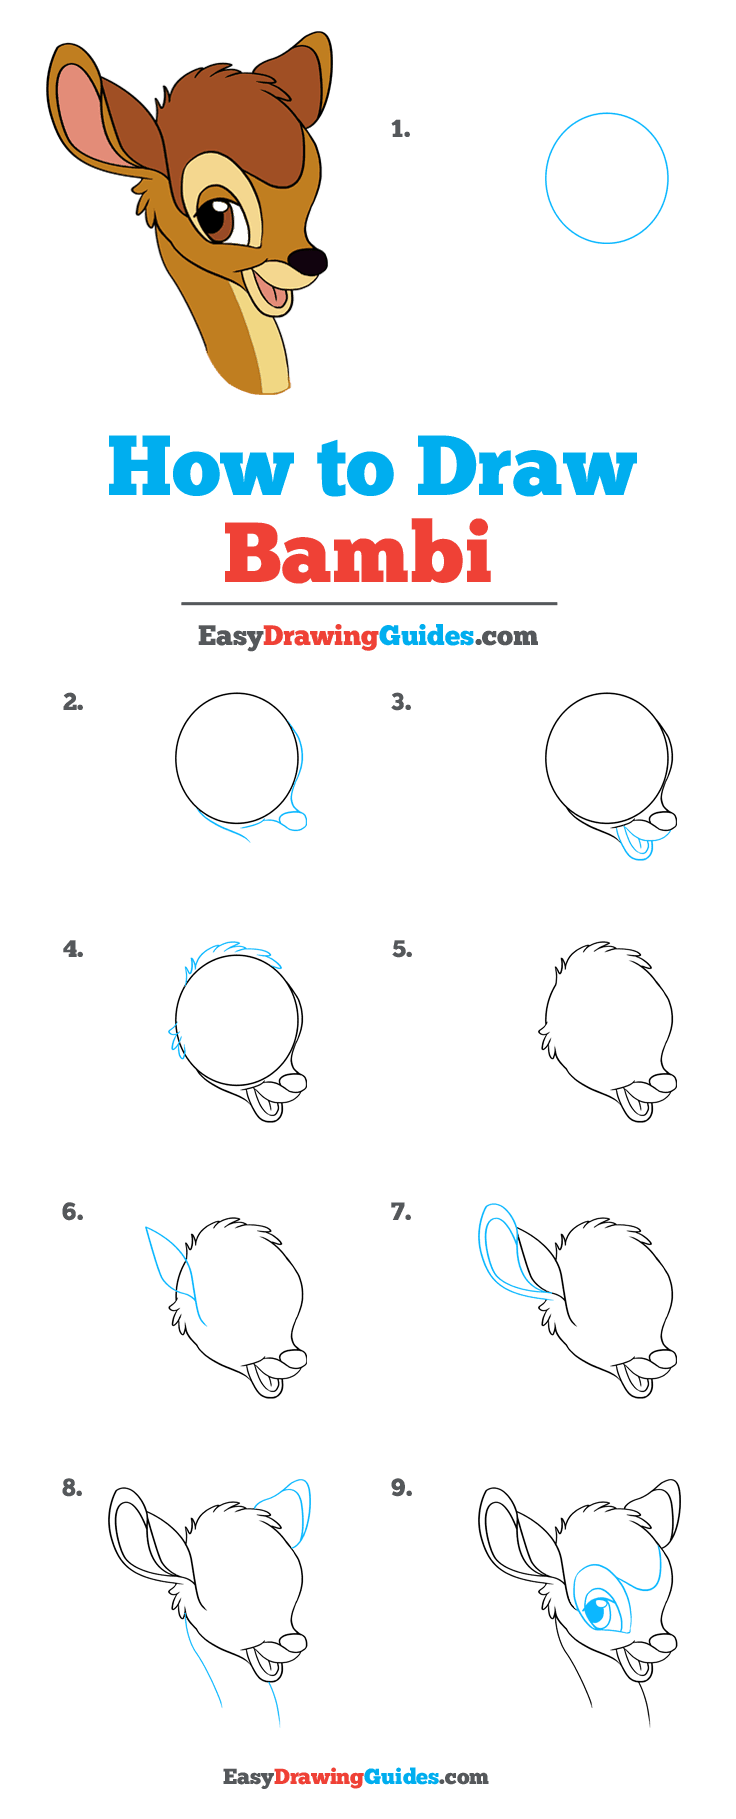 How to Draw Bambi Step by Step Tutorial Image